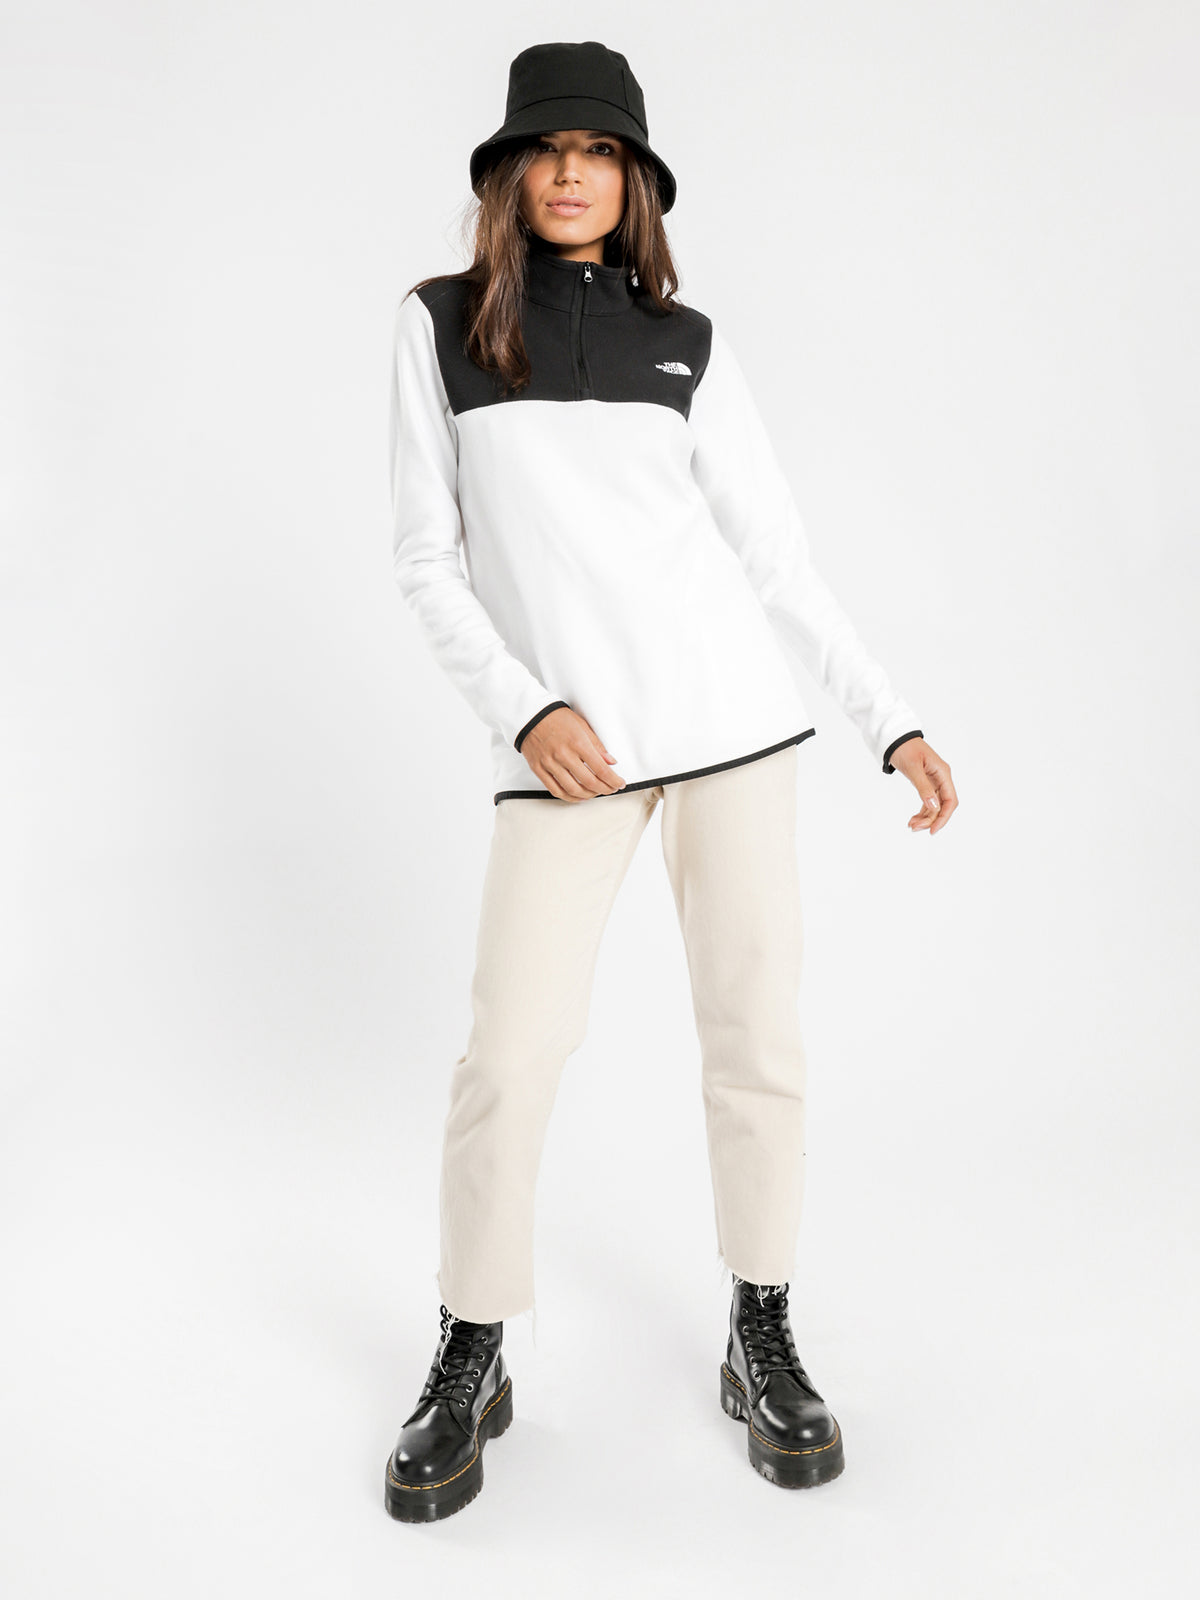 TKA Glacier 1/4 Zip Pullover in White